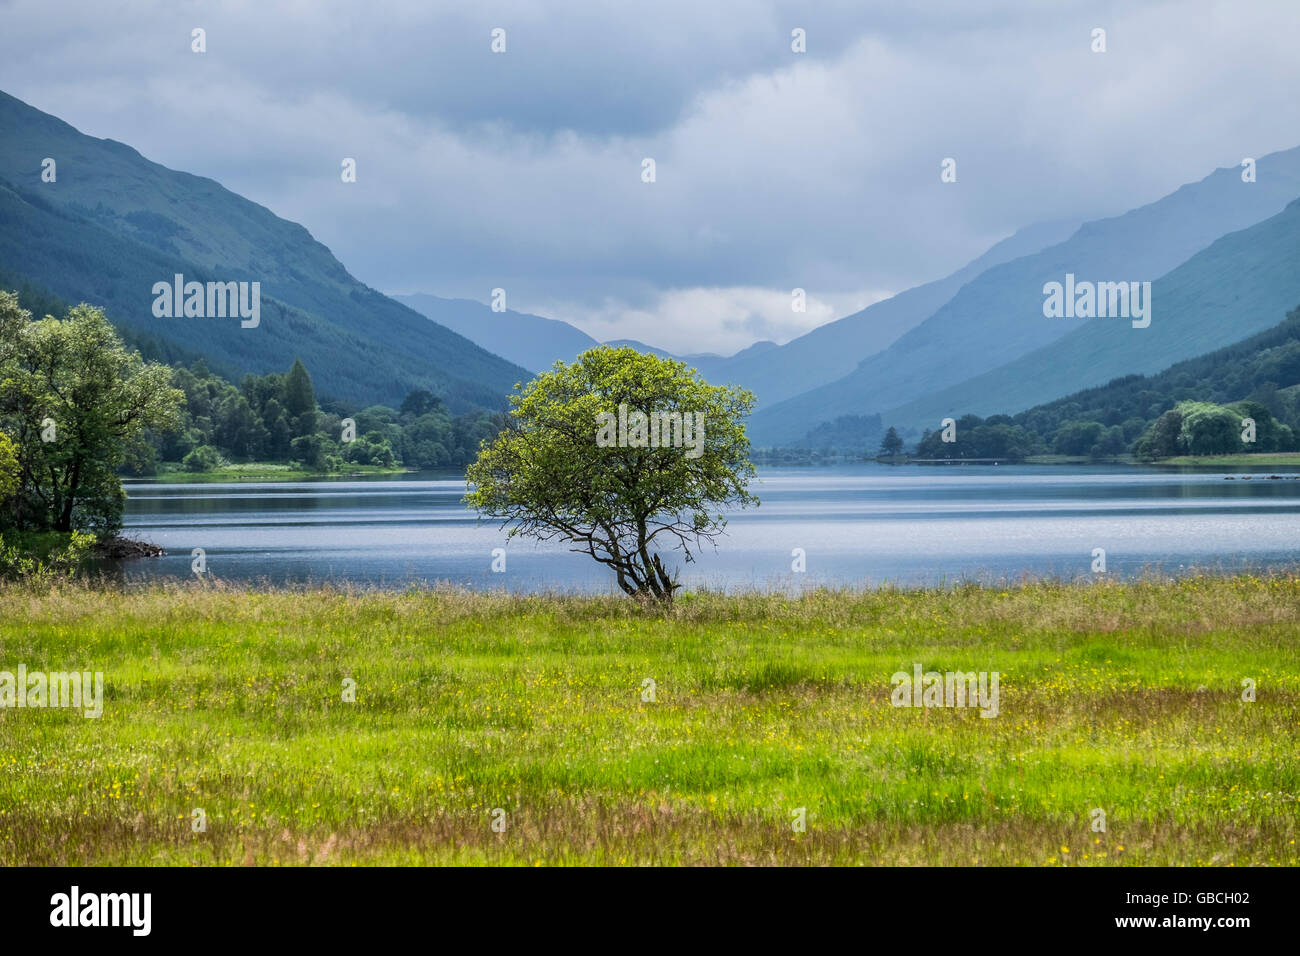 Iconic Scottish Scenery Looking Towards Loch Voil From Balquhidder With  Hills And Glens Beyond